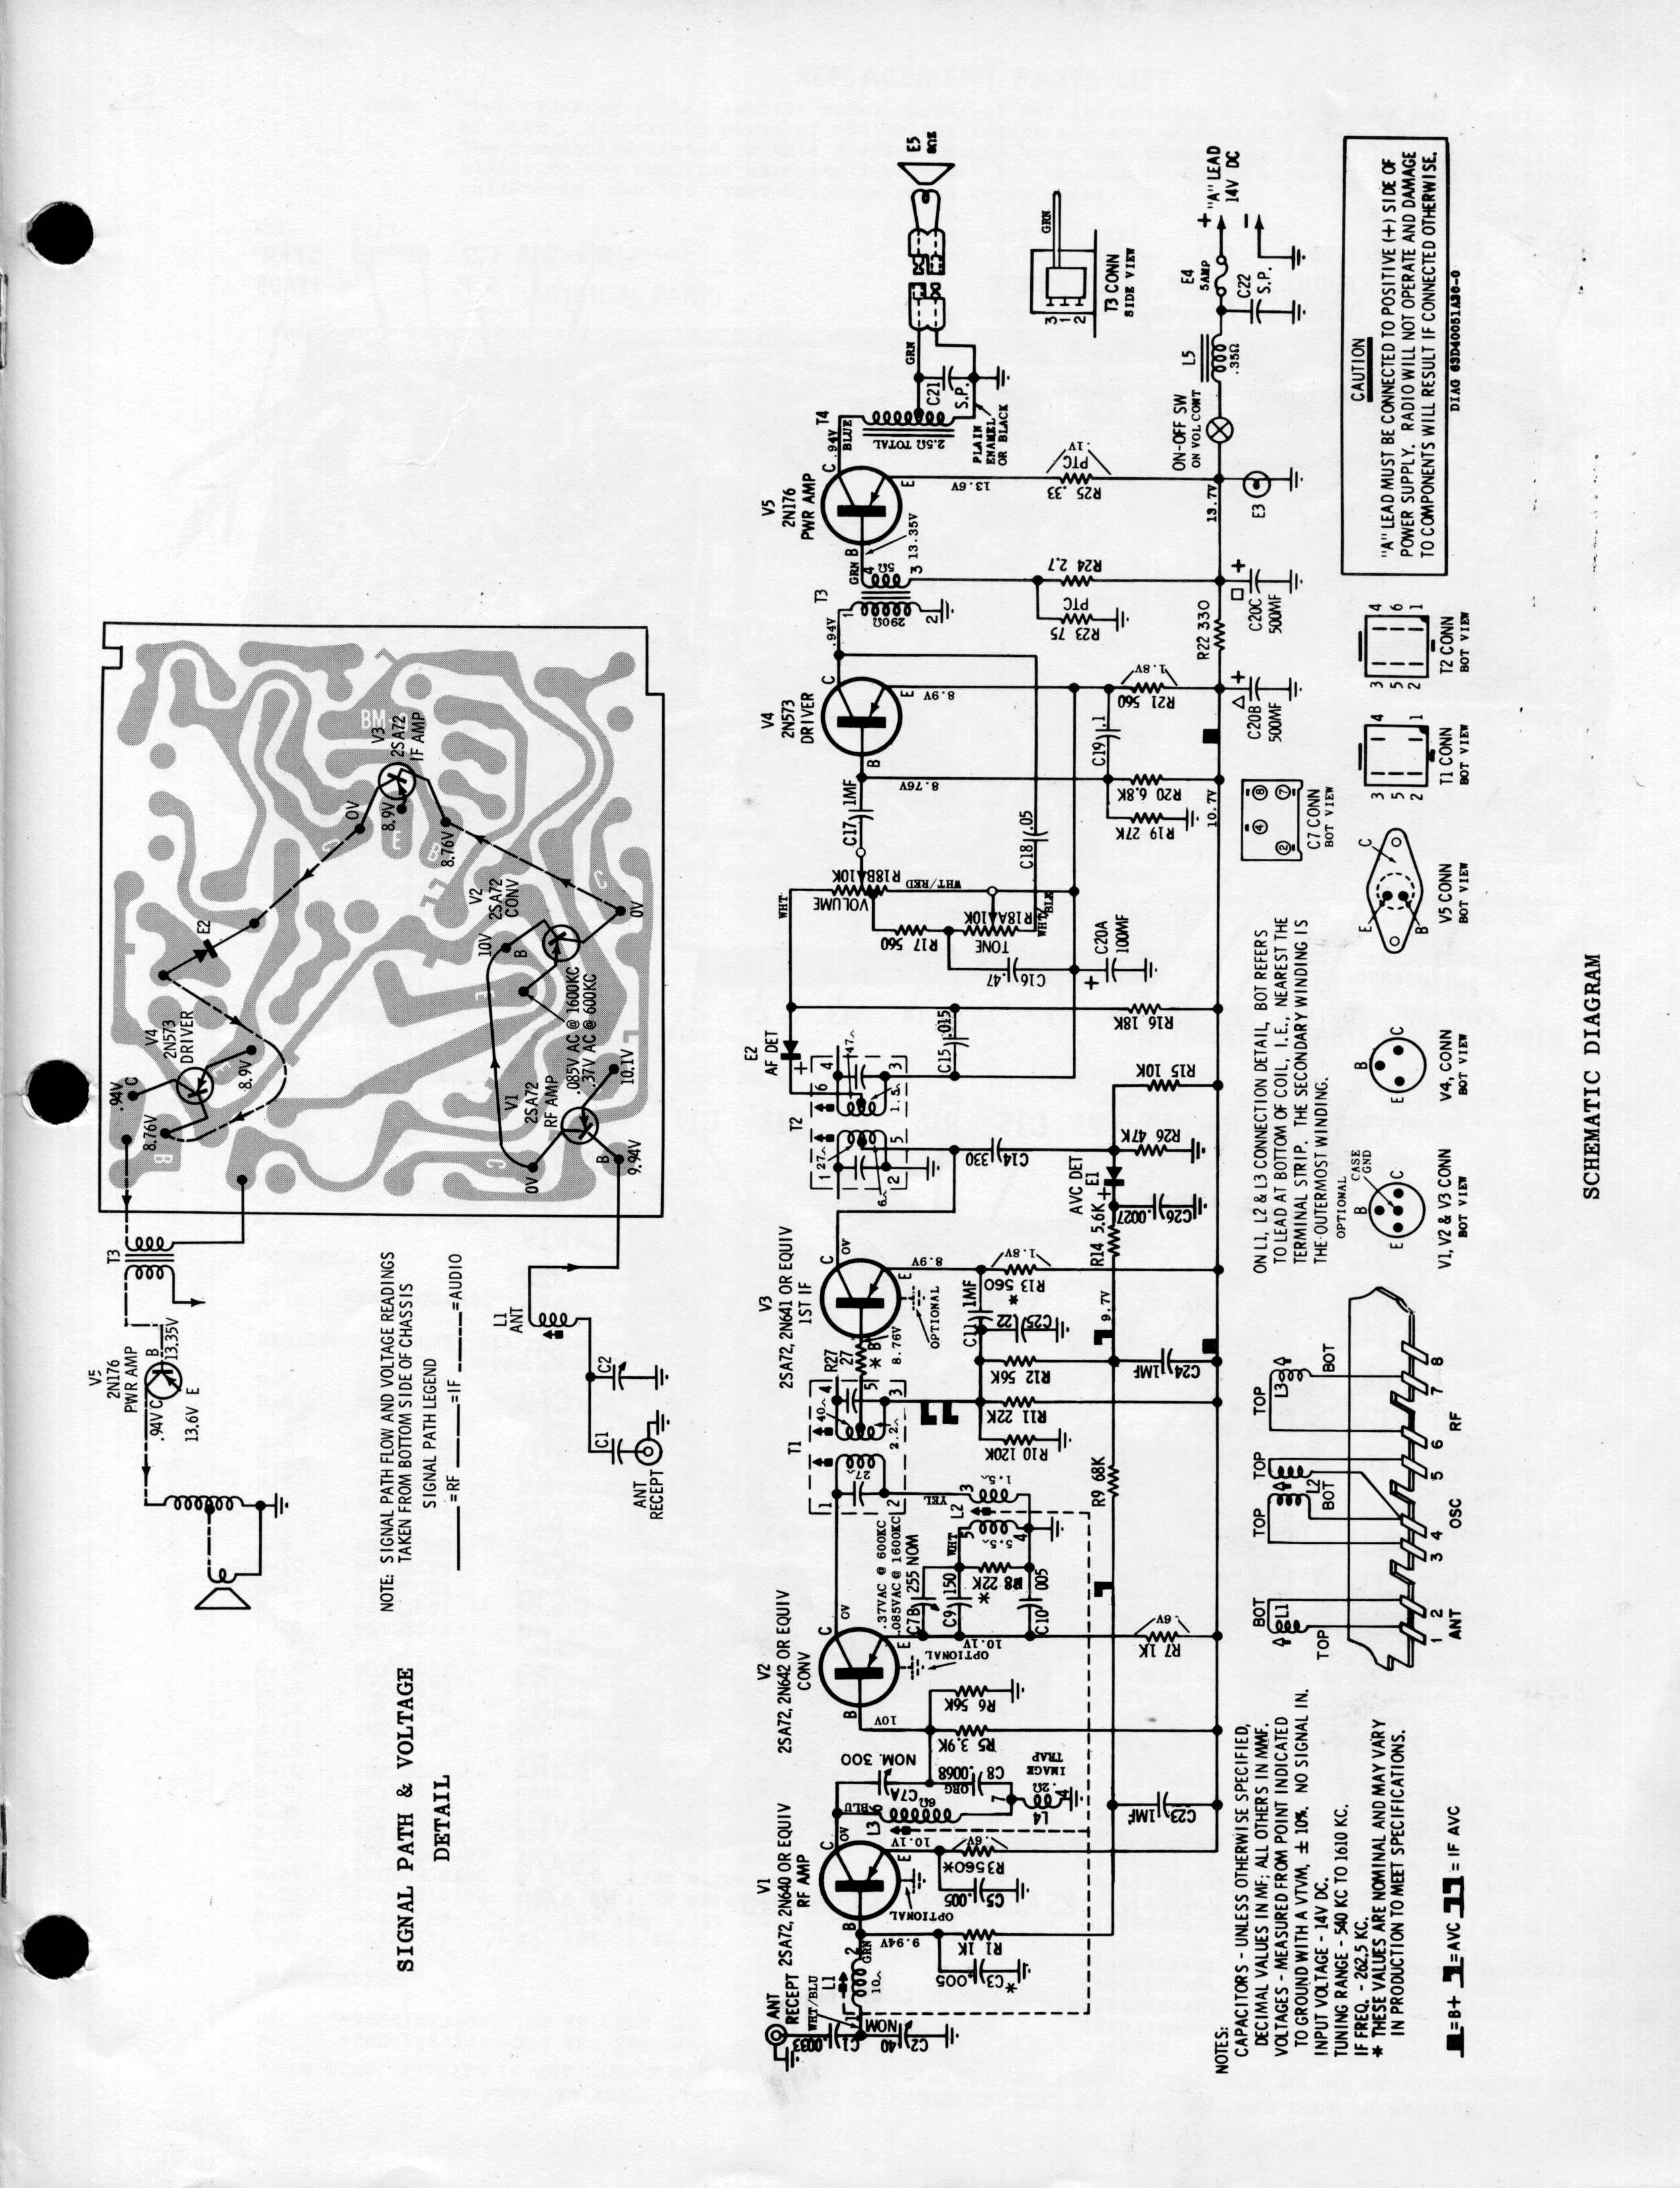 generac rv generator wiring diagram sky cable blog archives - bittorrentworks